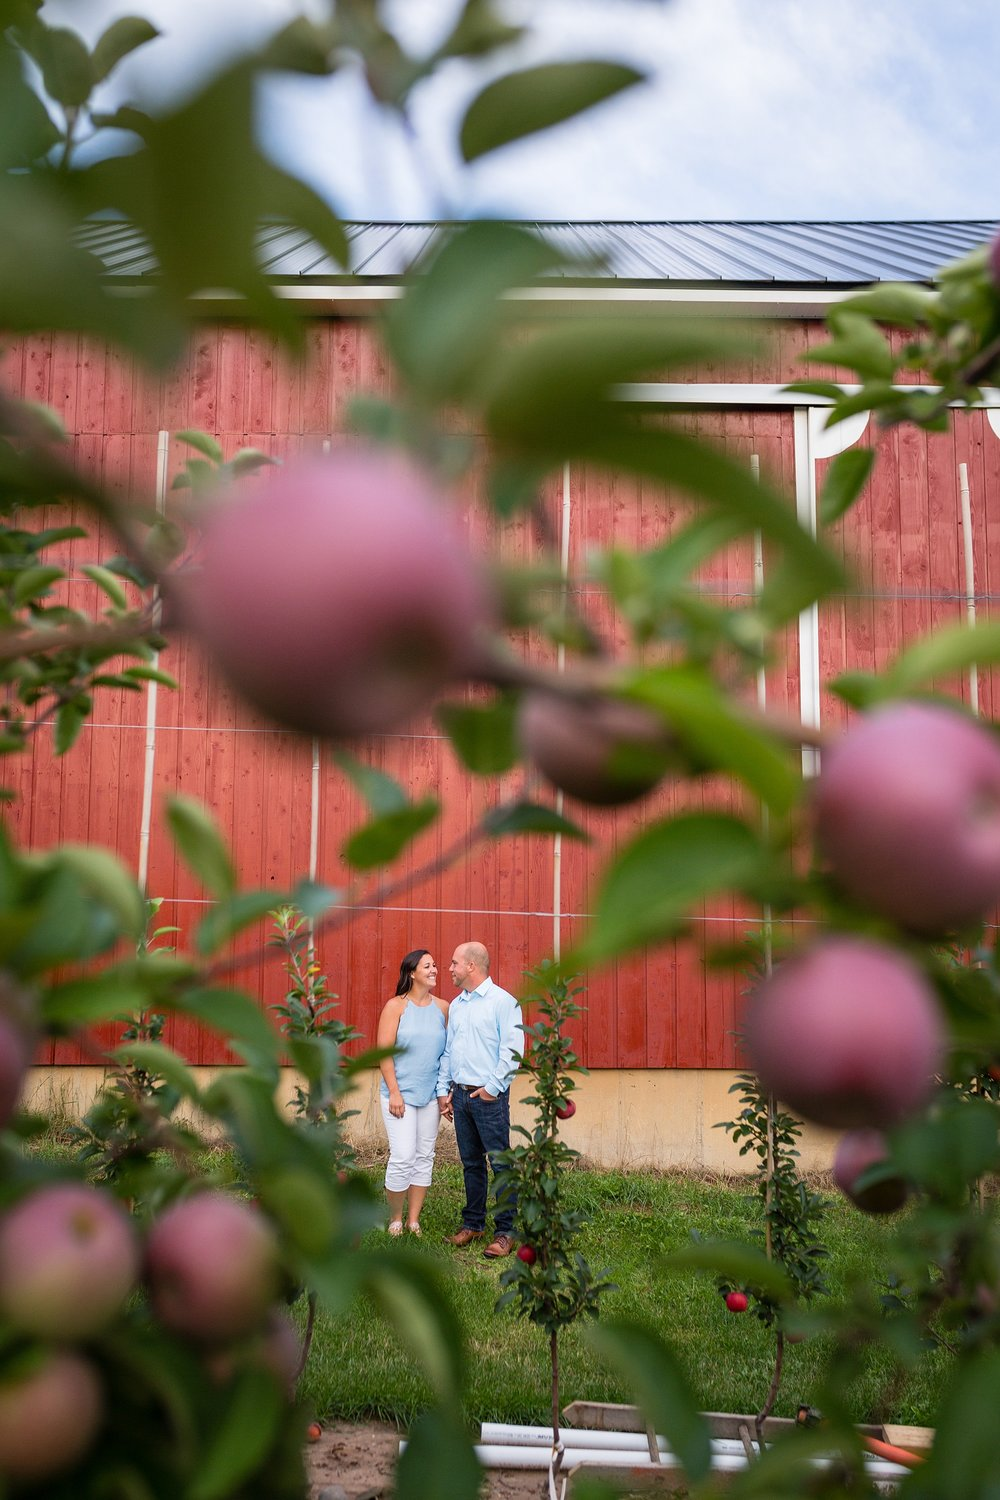 Brandon_Shafer_Photography_Danielle_Matt_Apple_Orchard_Engagement_Photos_0019.jpg